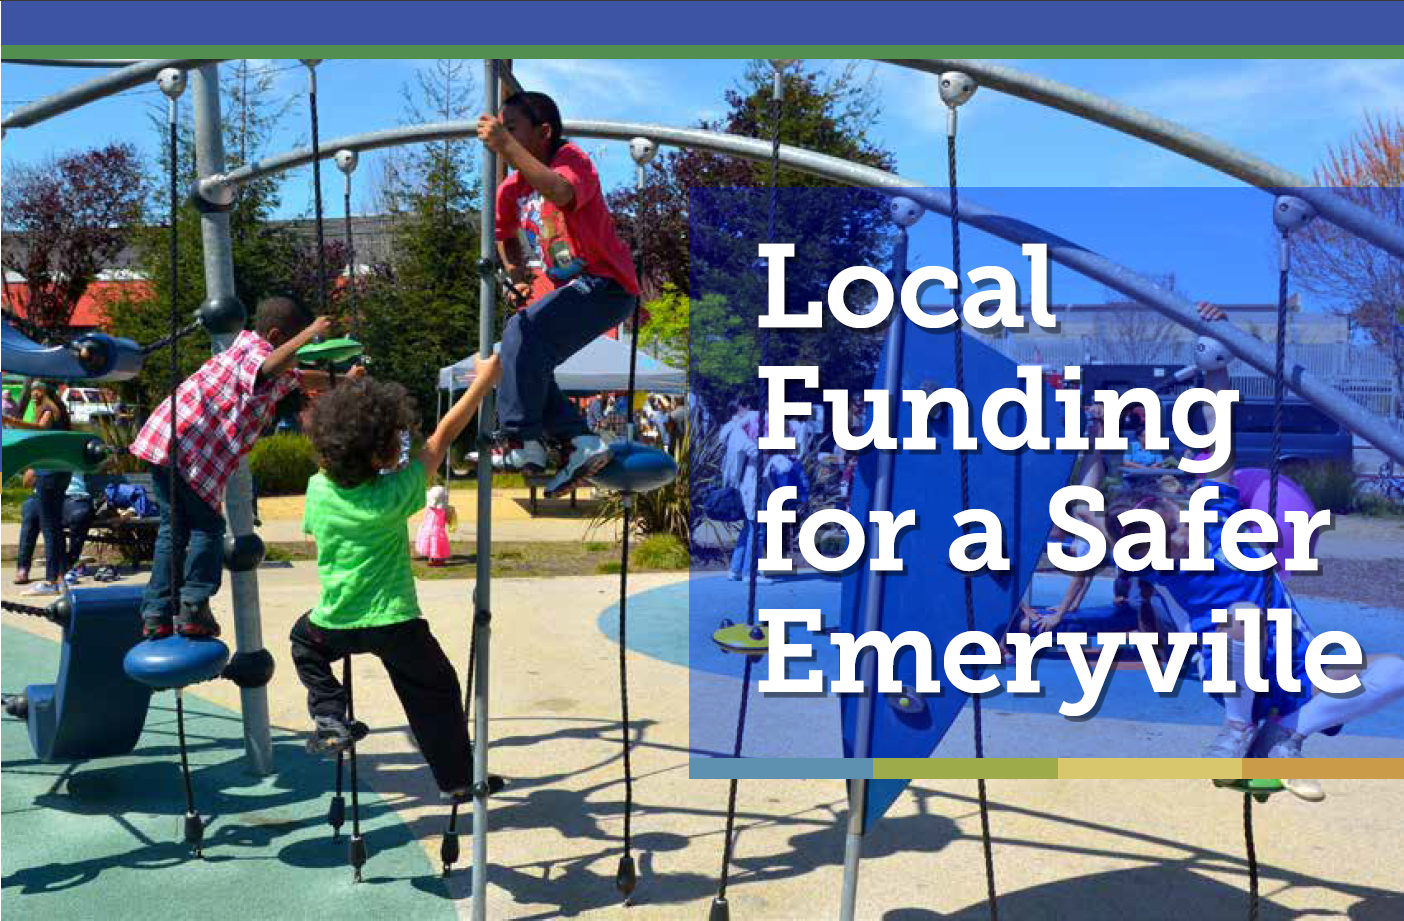 Local Funding for a Safer Emeryville